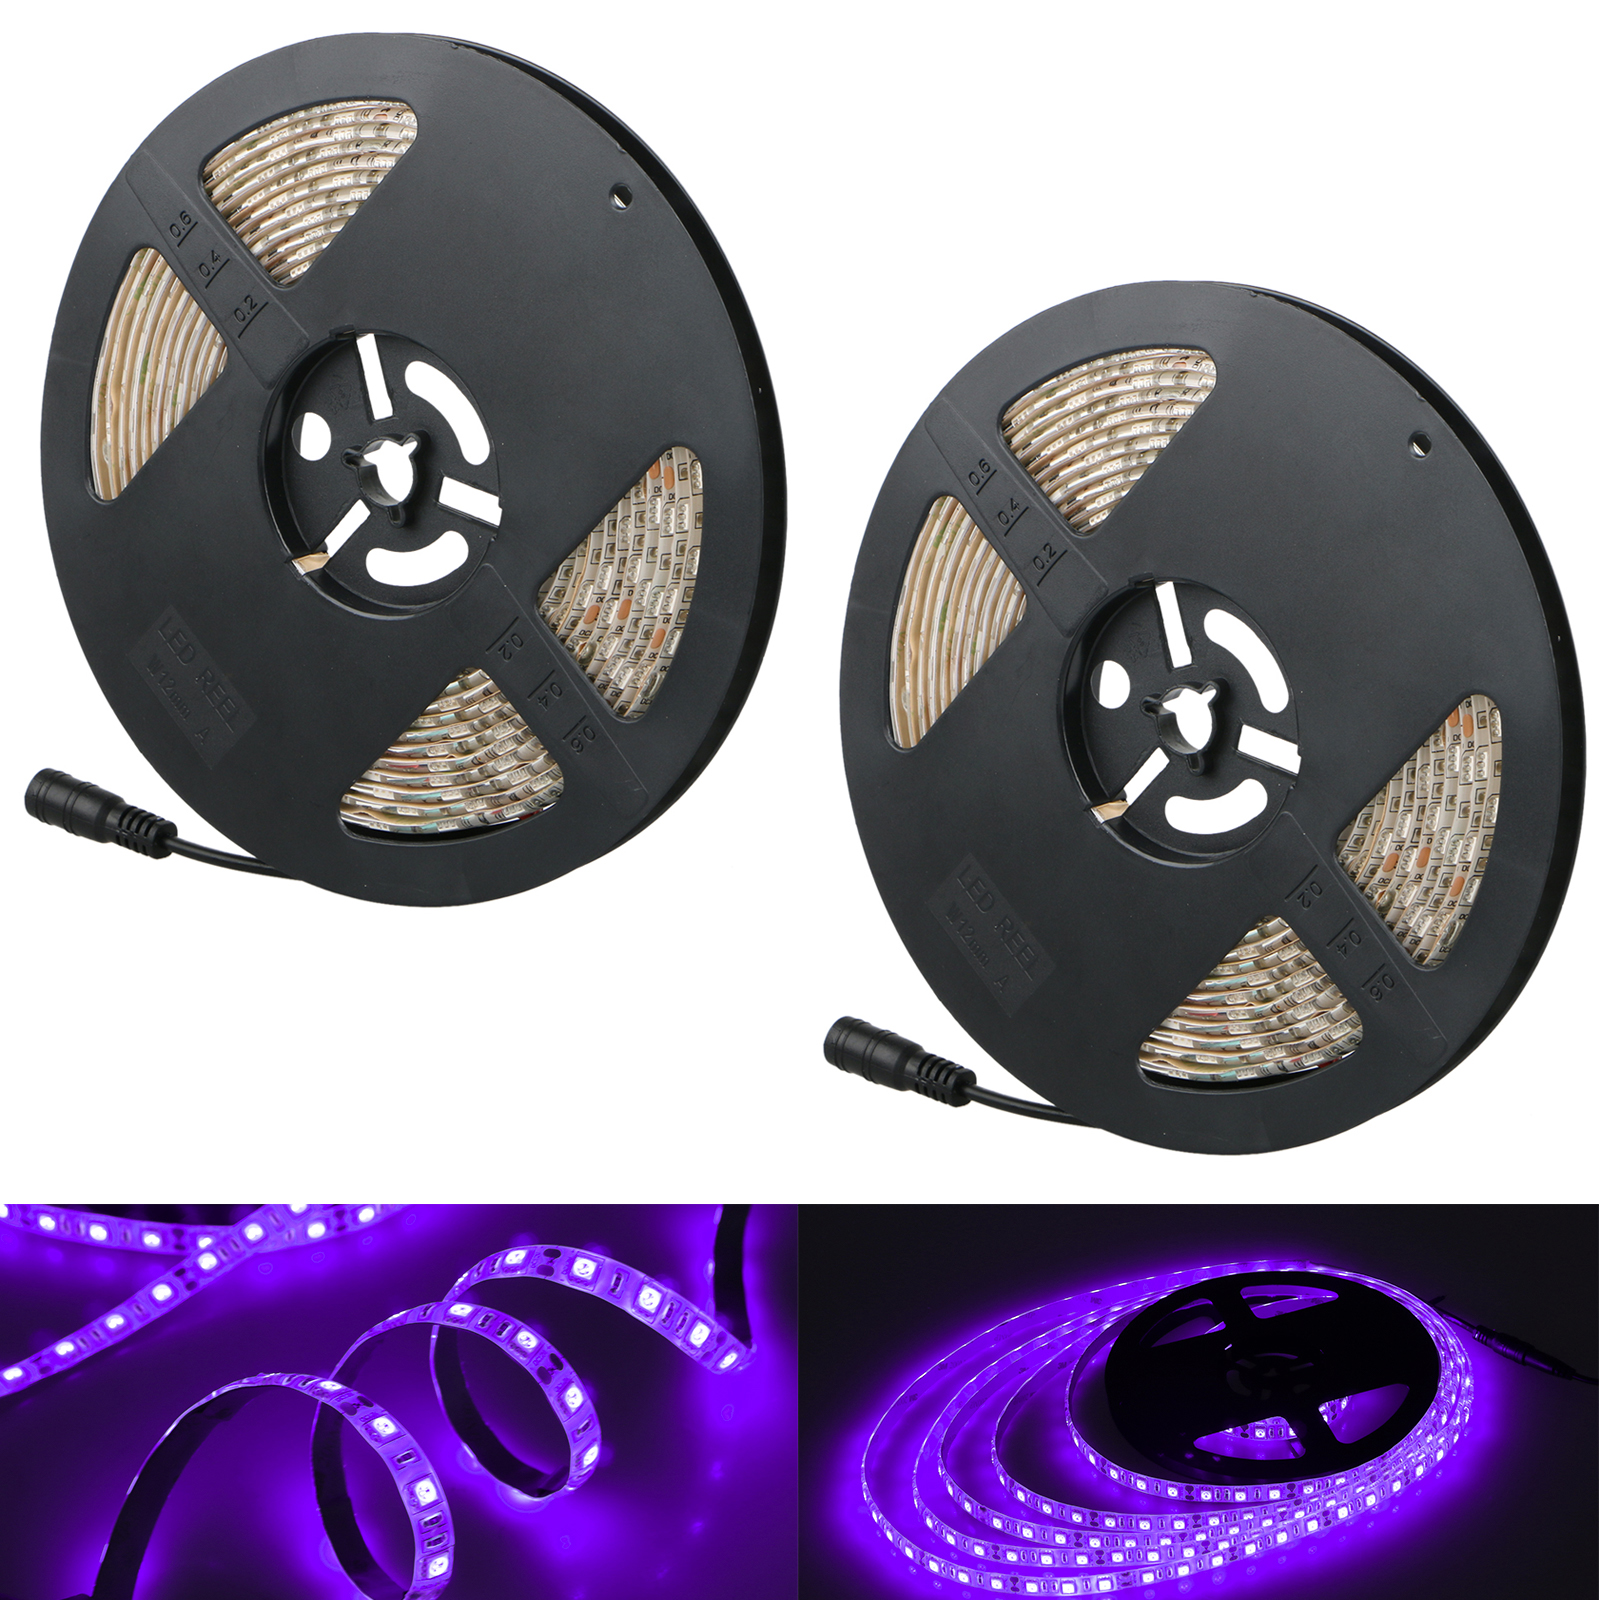 2-pack UV Black Light LED Strip, 16.4FT/5M 5050 300LEDs 395nm-405nm Waterproof BlackLight Night Fishing Sterilization implicitly Party, with 12V 2A 24W Power Supply